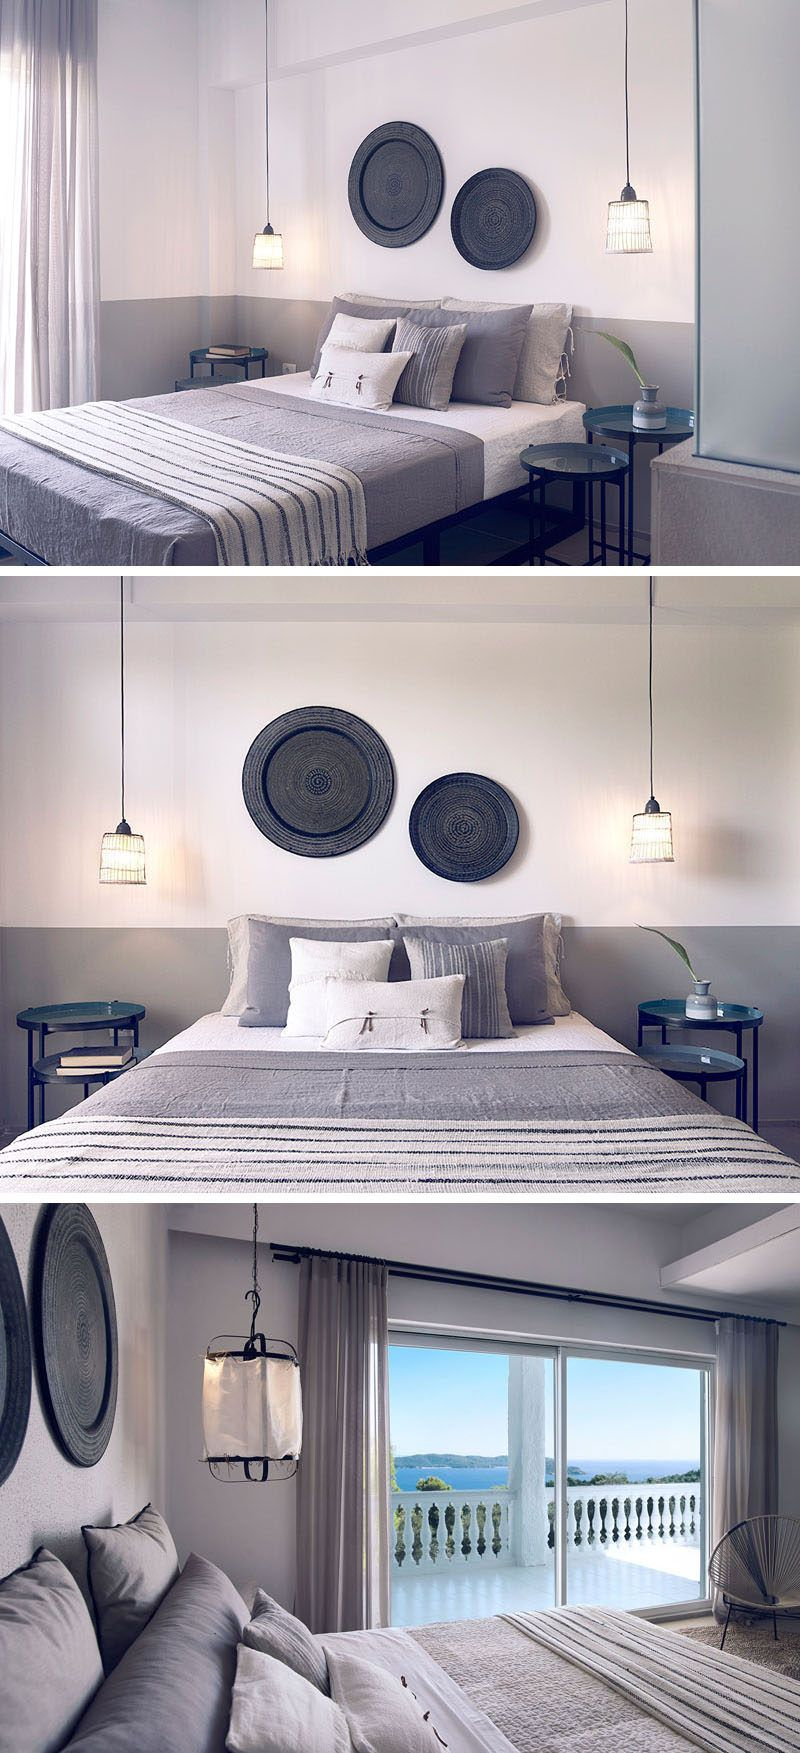 Beau This Modern Hotel Room From A Hotel In Greece, Has White Walls With A Lower  Grey Stripe, Decorative Floor Tiles, Wall Decor And Glass Room Dividers ...